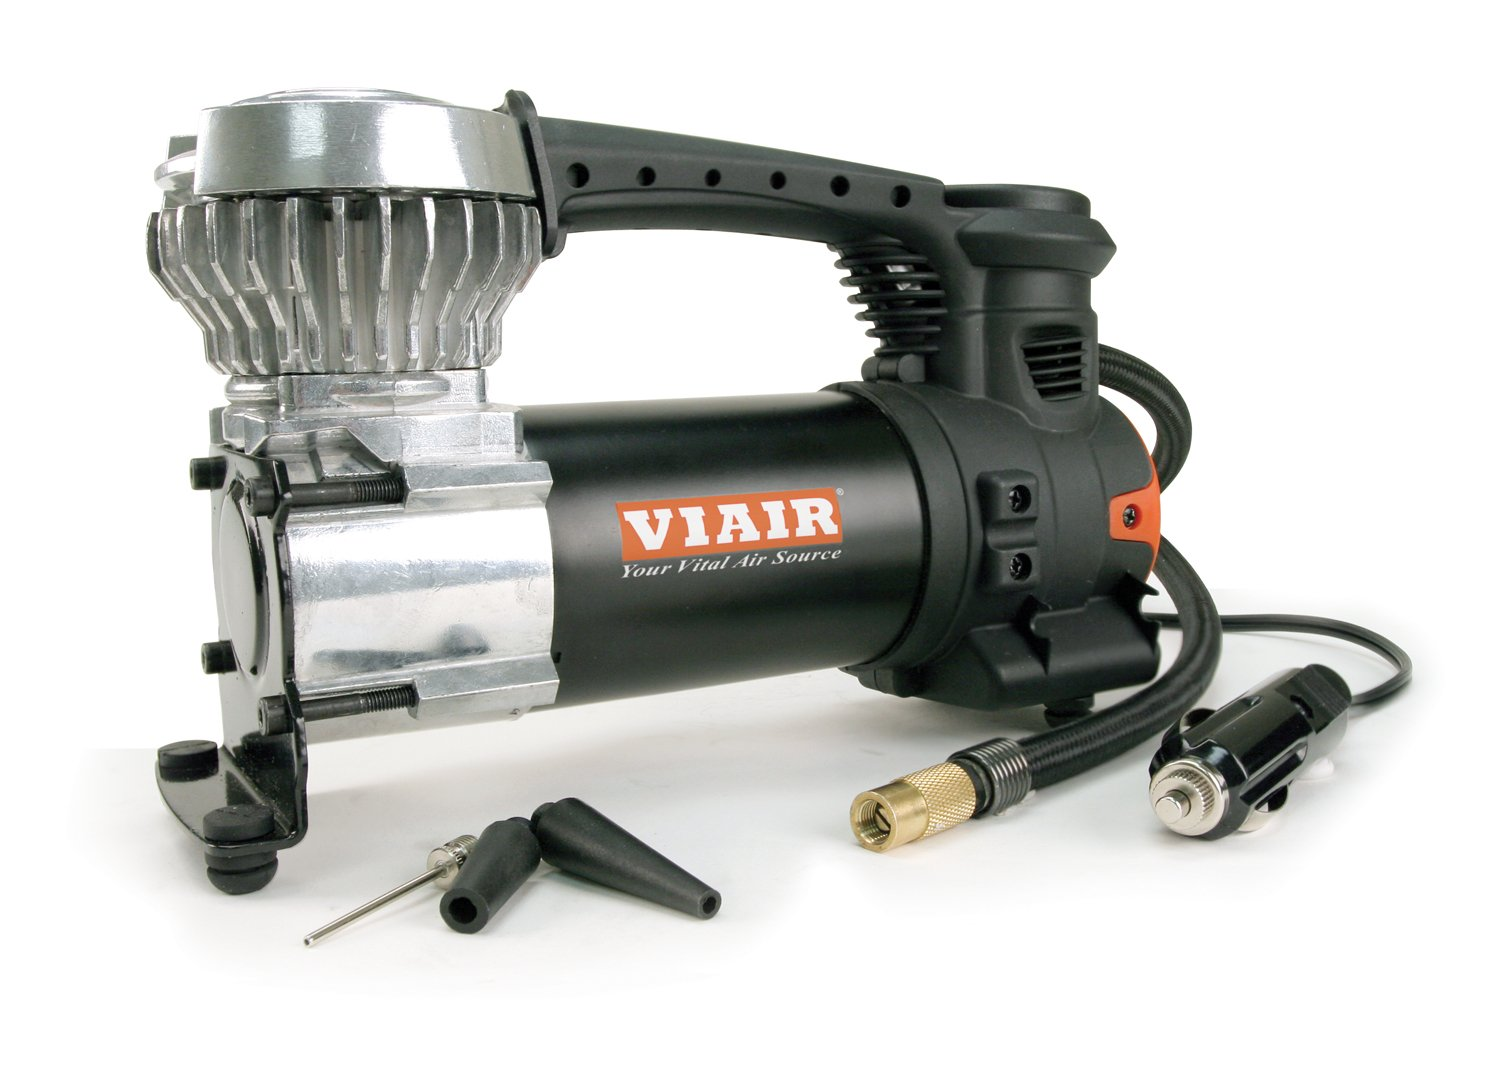 9. Viair 85P Portable Air Compressor